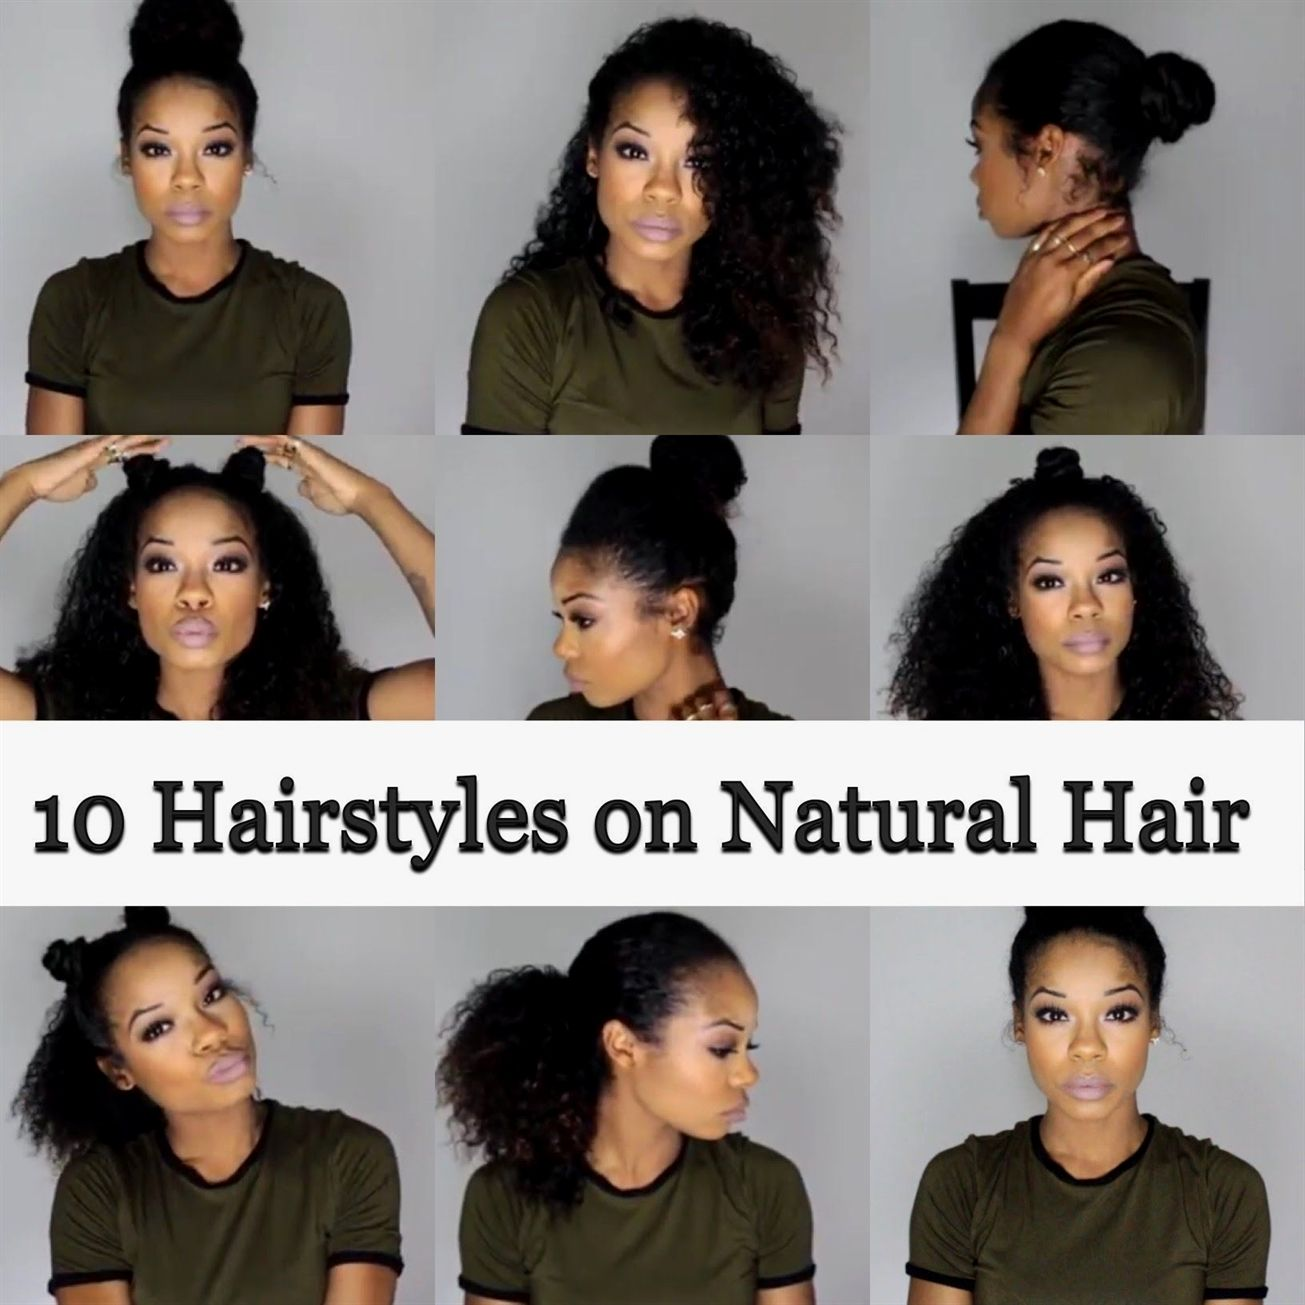 Protective Hairstyles For Short 3b Hair Natural Hair Styles Easy Transitioning Hairstyles Curly Hair Styles